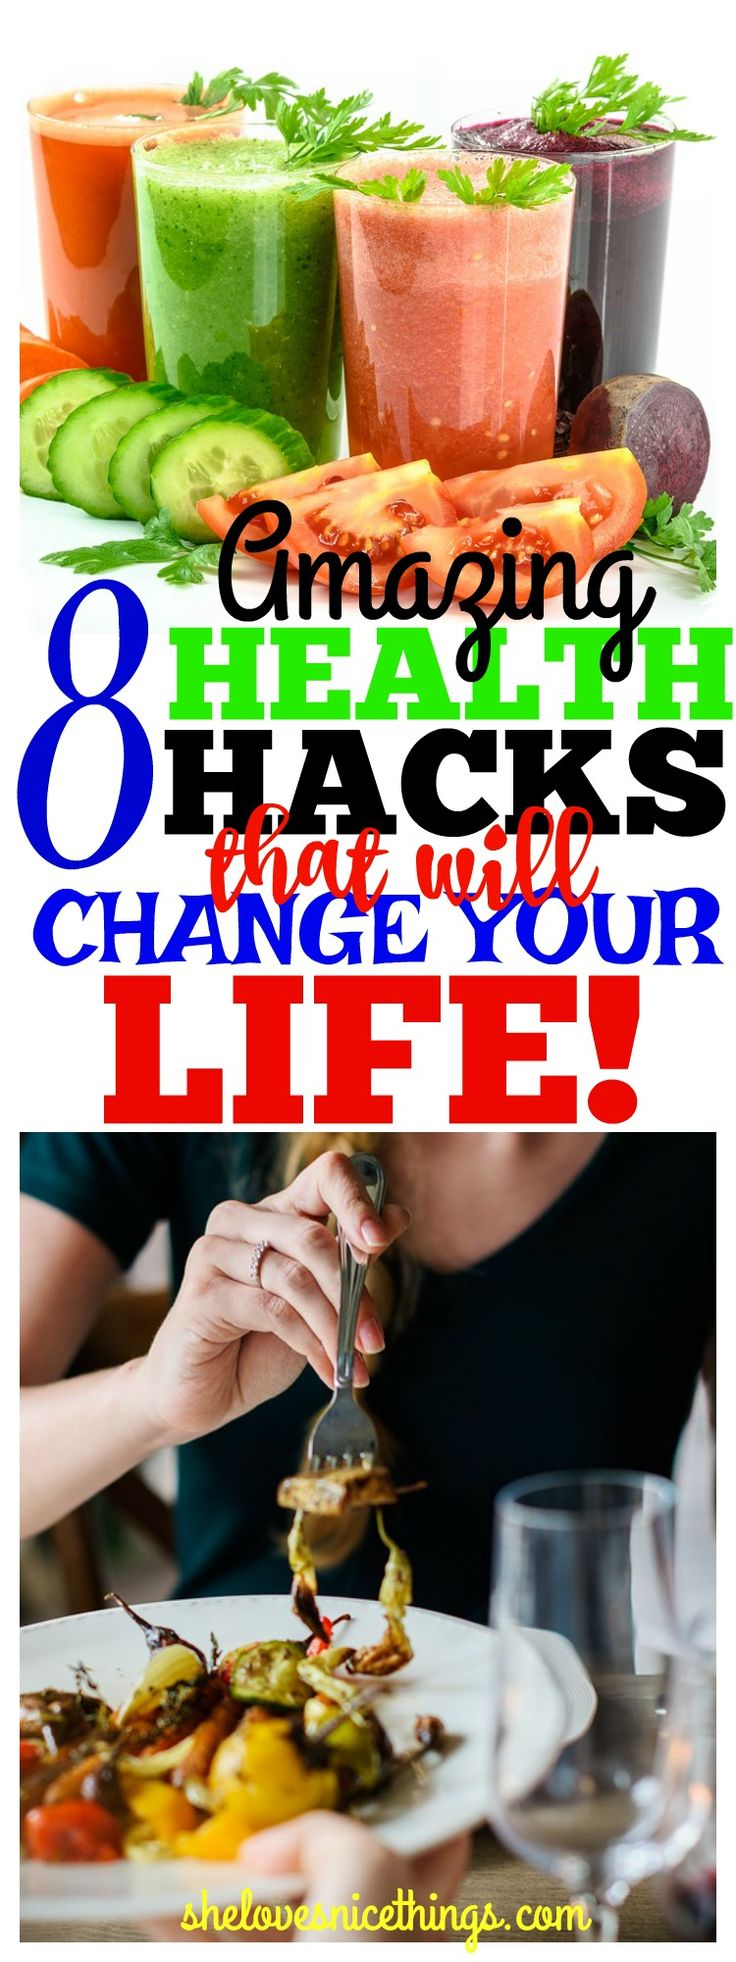 8 #health hacks that Will Change Your #Life - #lifestyle #healthyliving